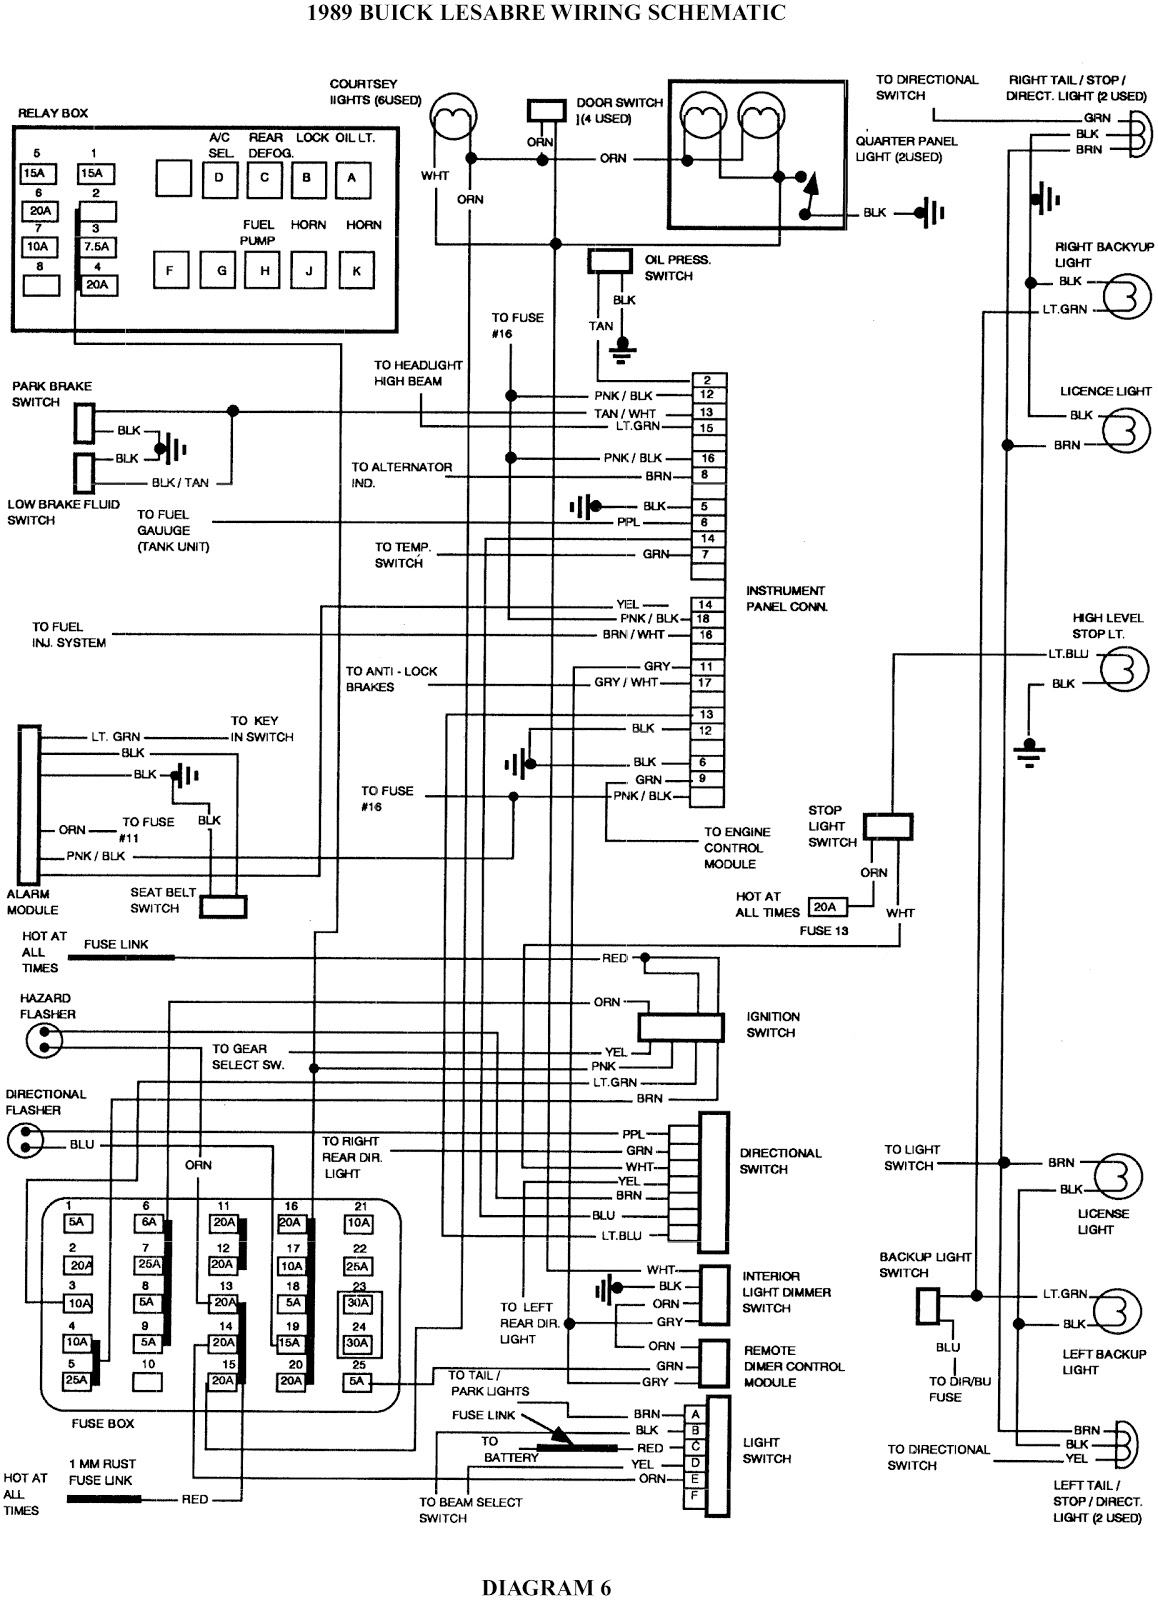 s10 headlight switch diagrama de cableado